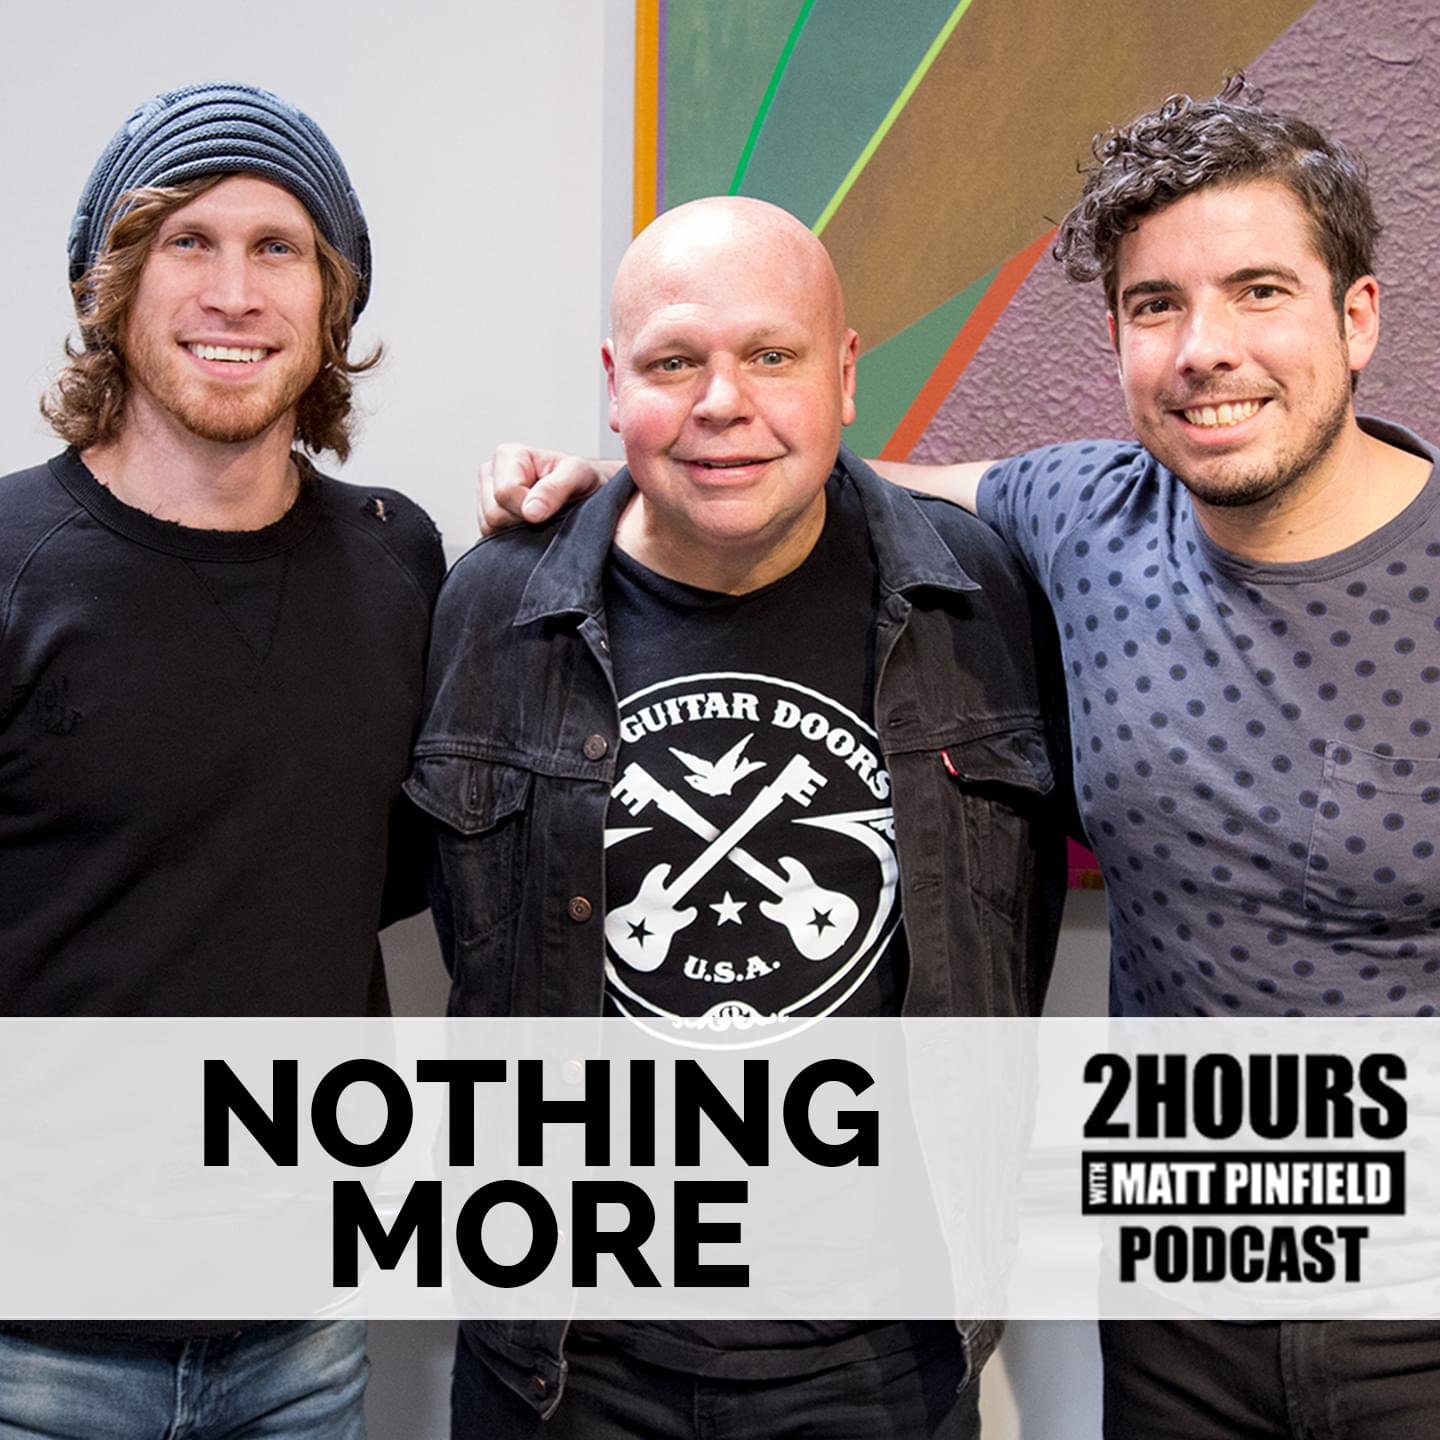 Podcast: Nothing More/Andrew W.K.